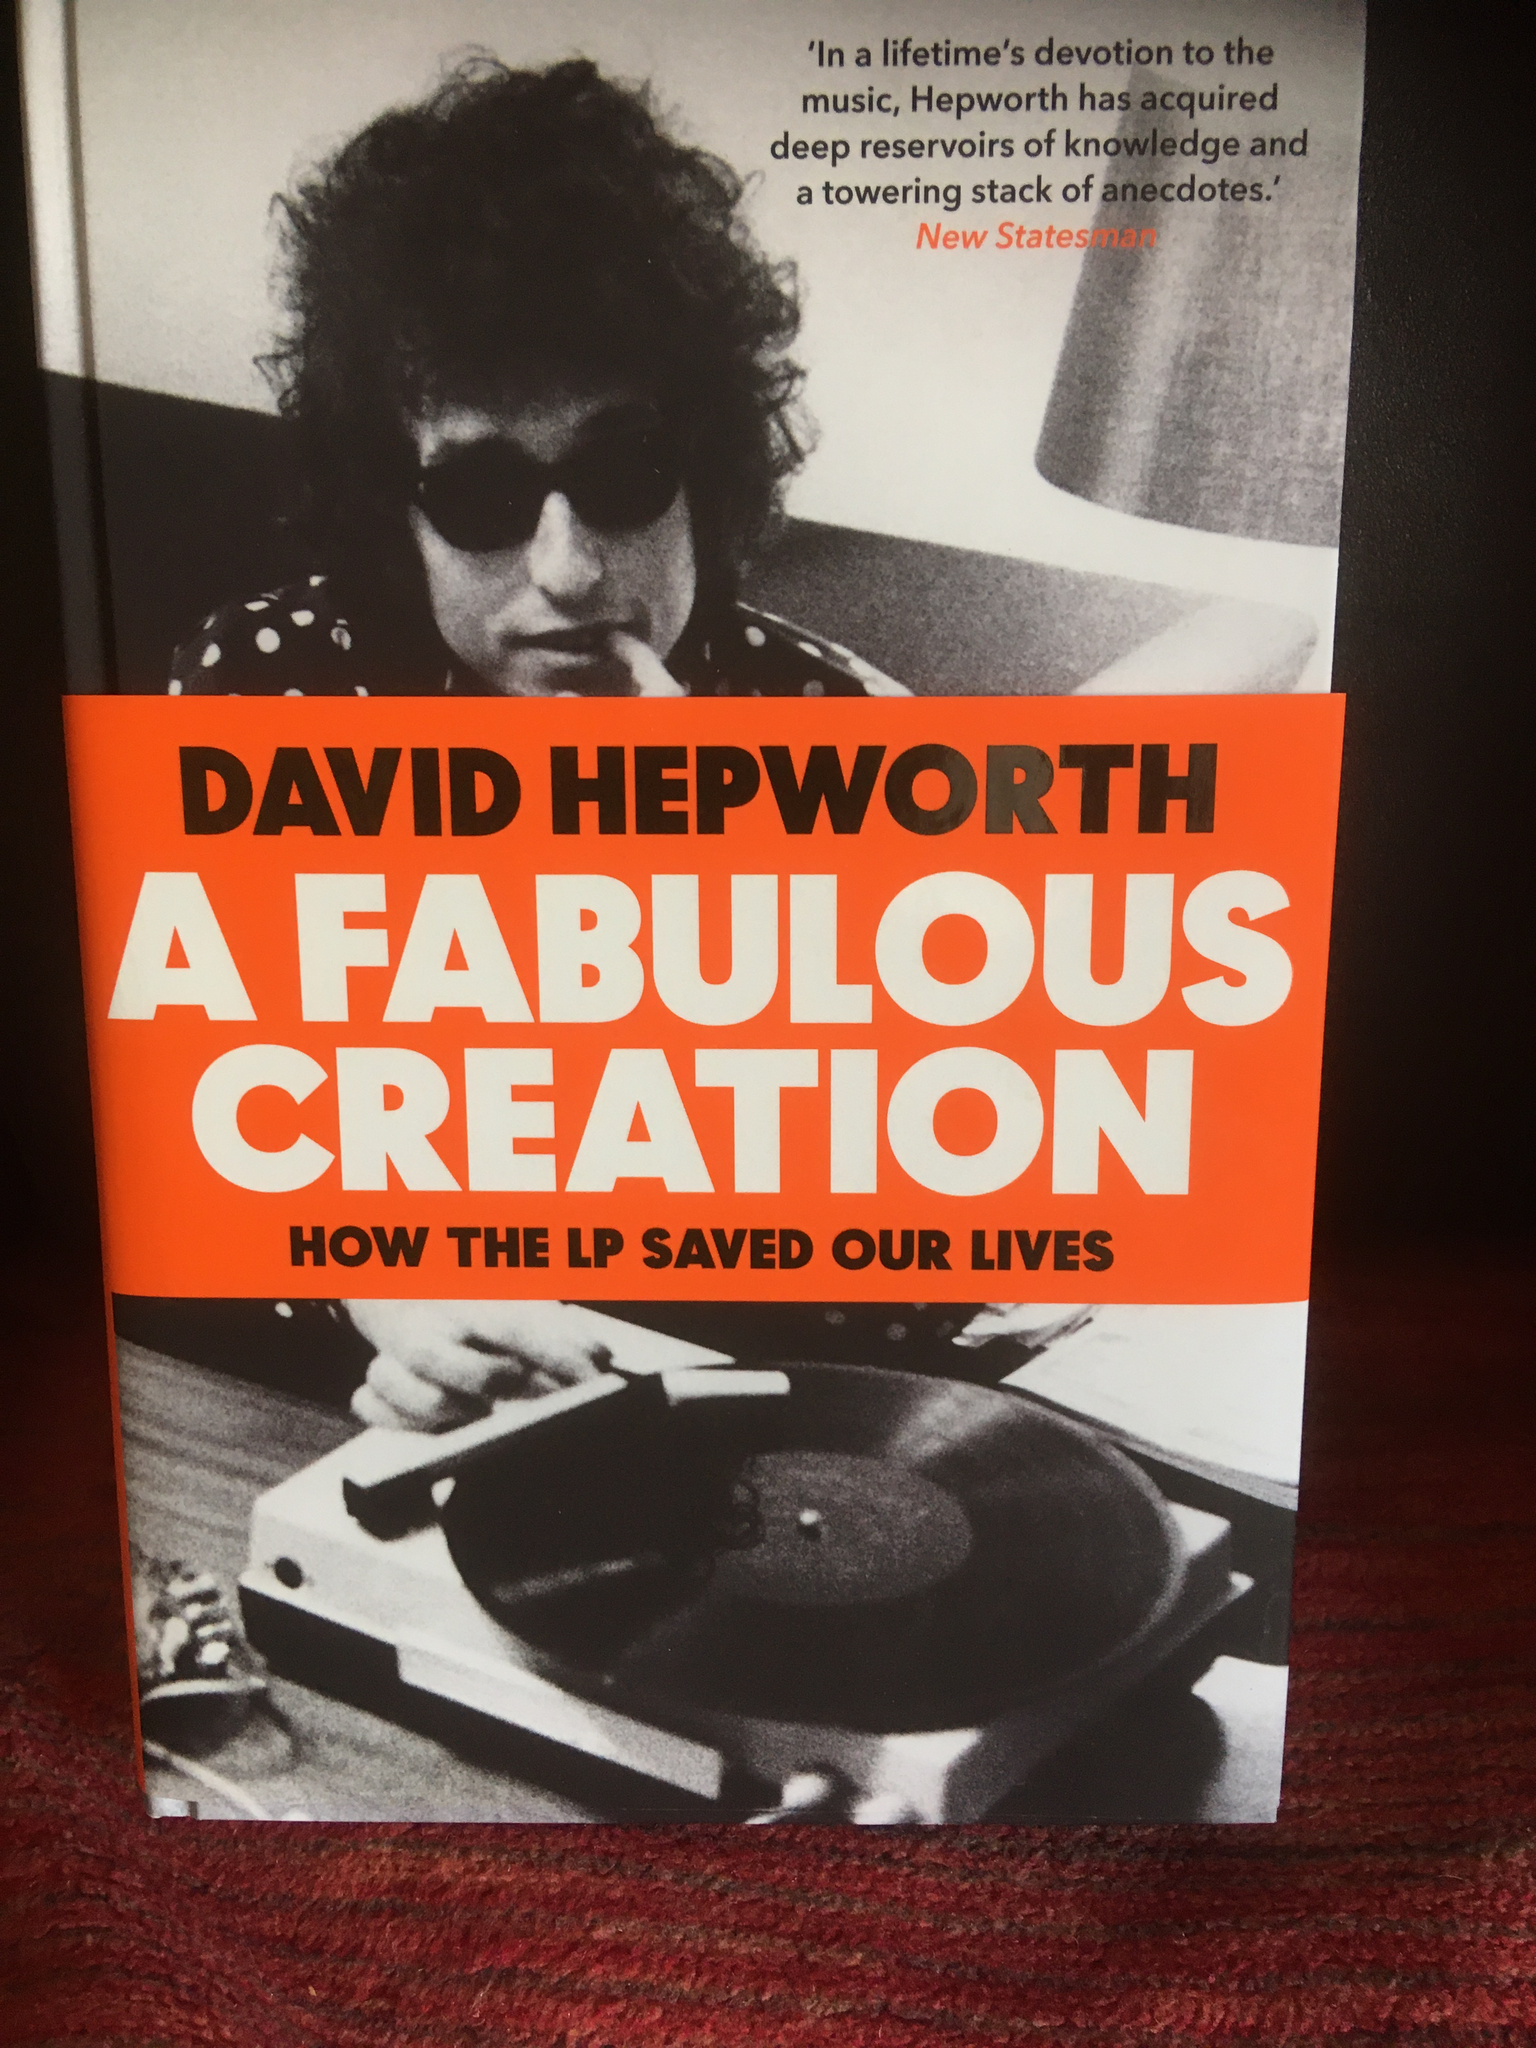 A Fabulous Creation: How the LP Saved Our Lives Hardcover by David Hepworth **SIGNED BY AUTHOR**